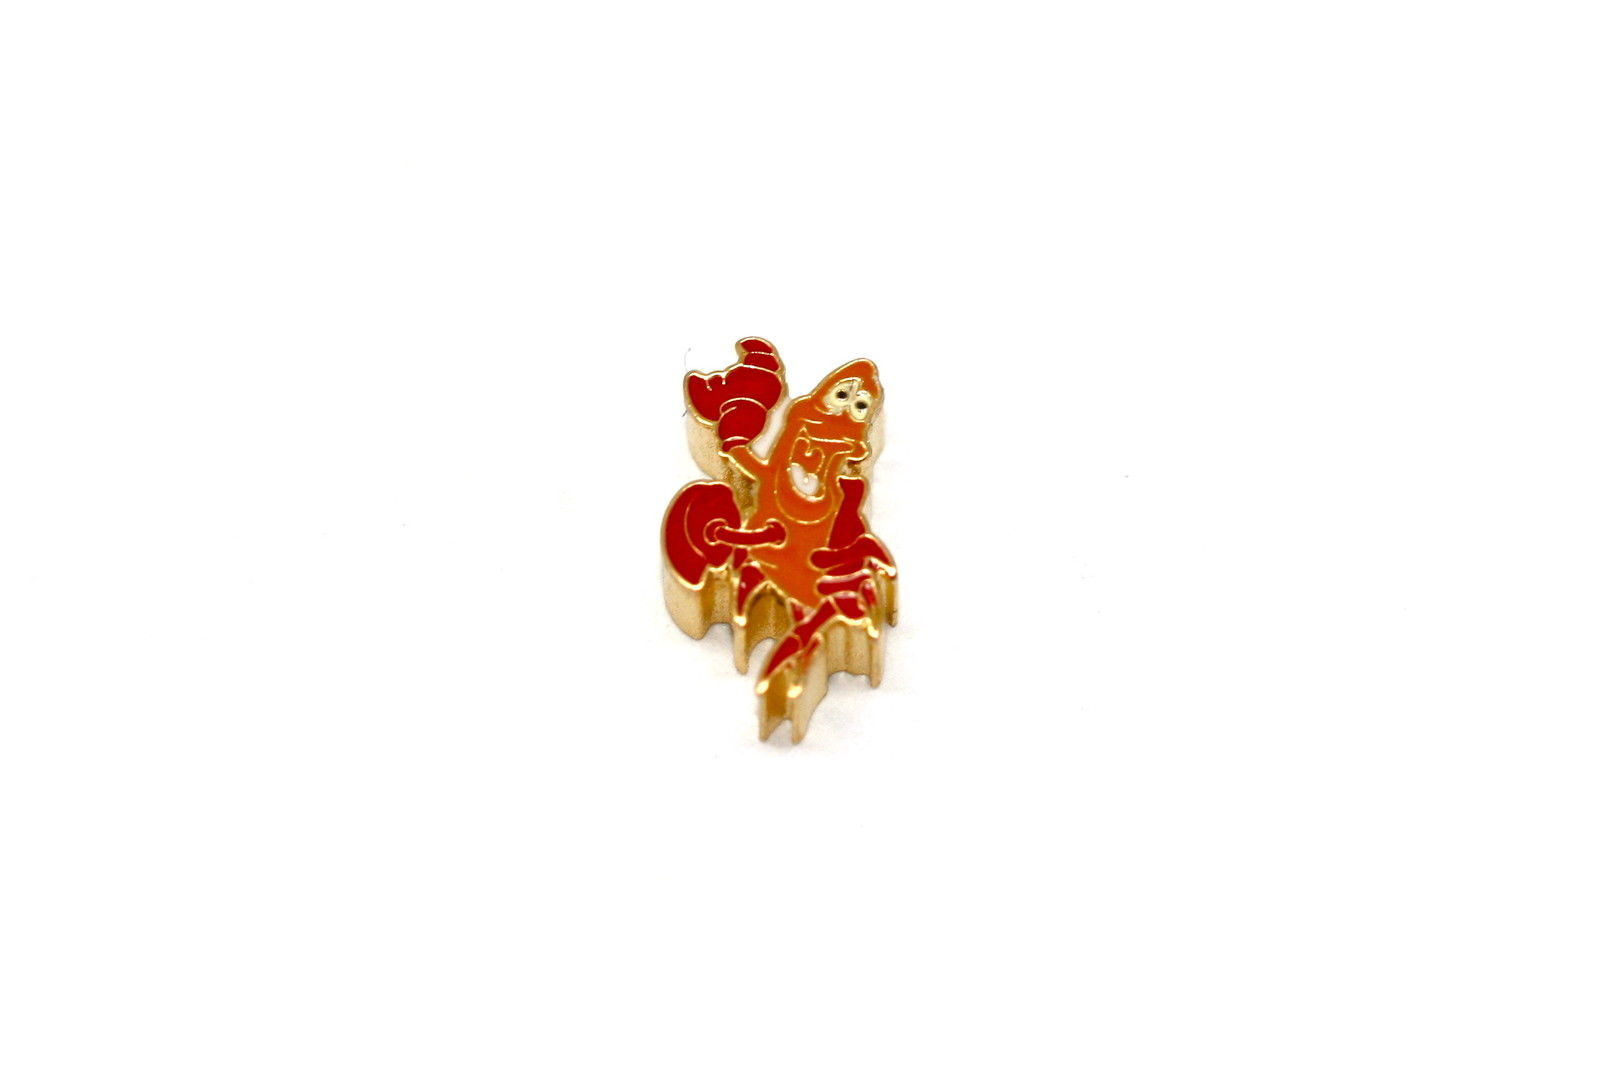 BRACCIALE DISNEY LITTLE MERMAID CRAB GOLD STAINLESS STEEL GOLD PLATED CHARM